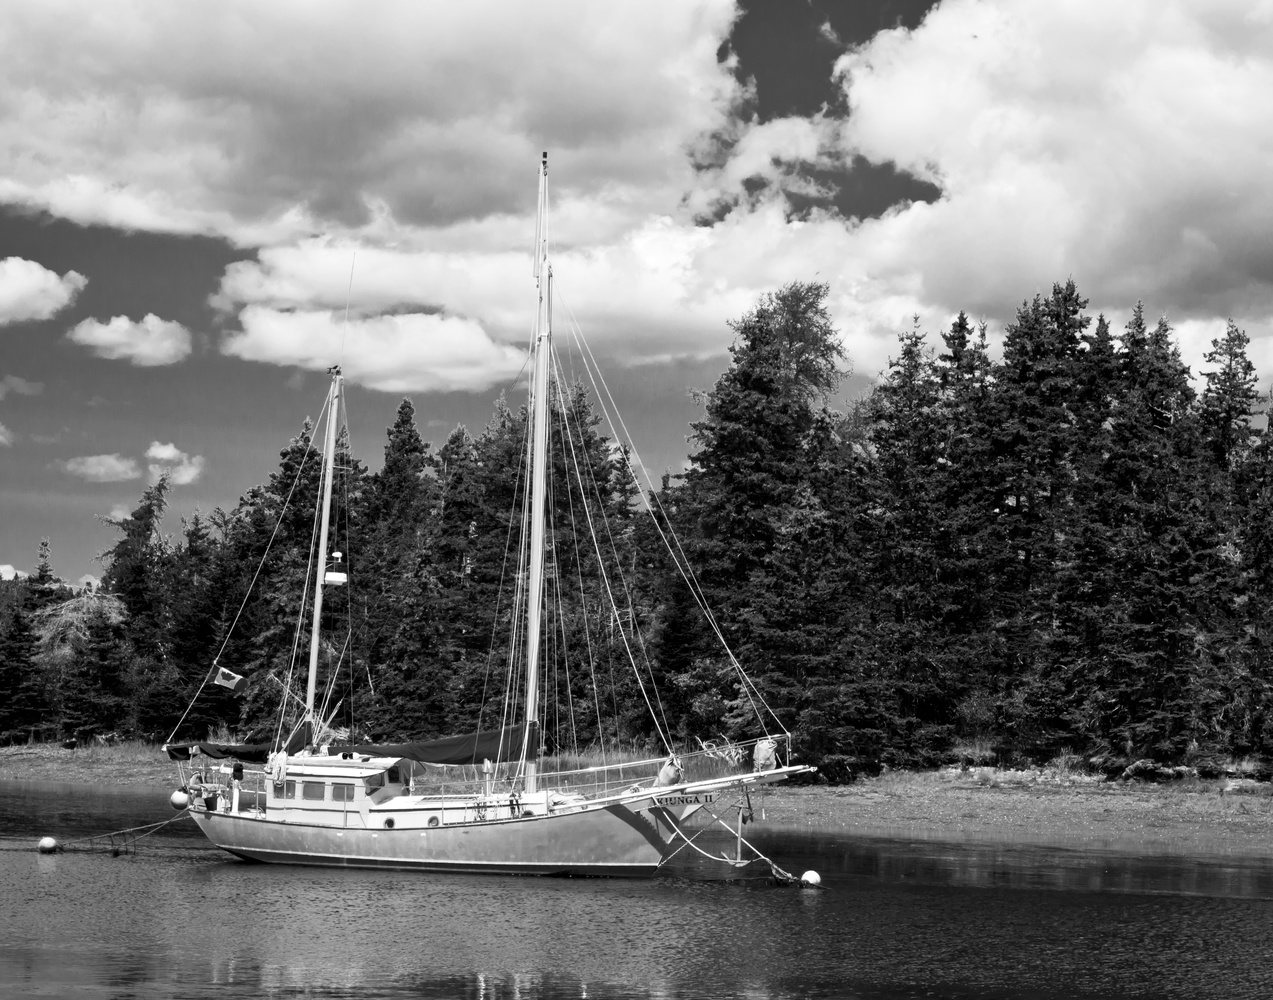 The Sail Boat by James Jewers